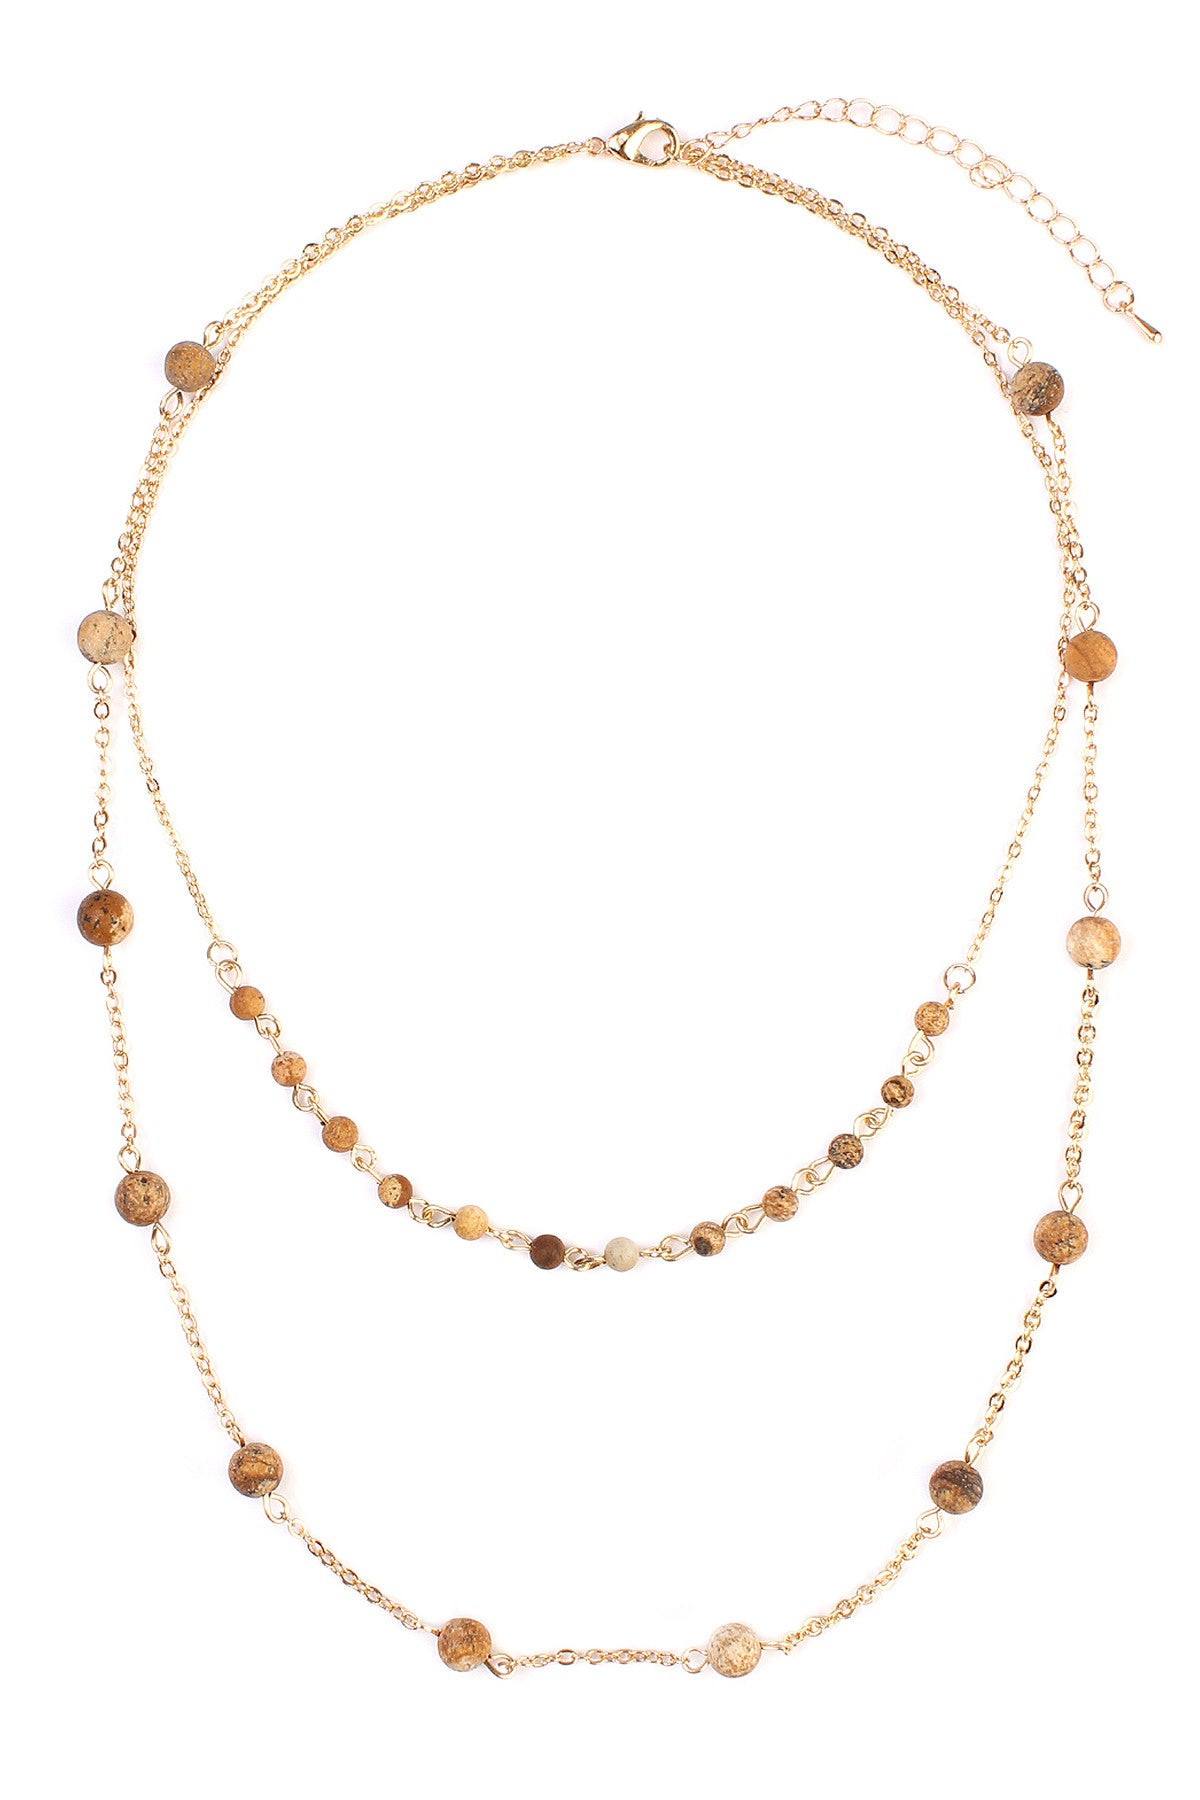 Wooden Bead Layered Necklace - Enclothe Boutique